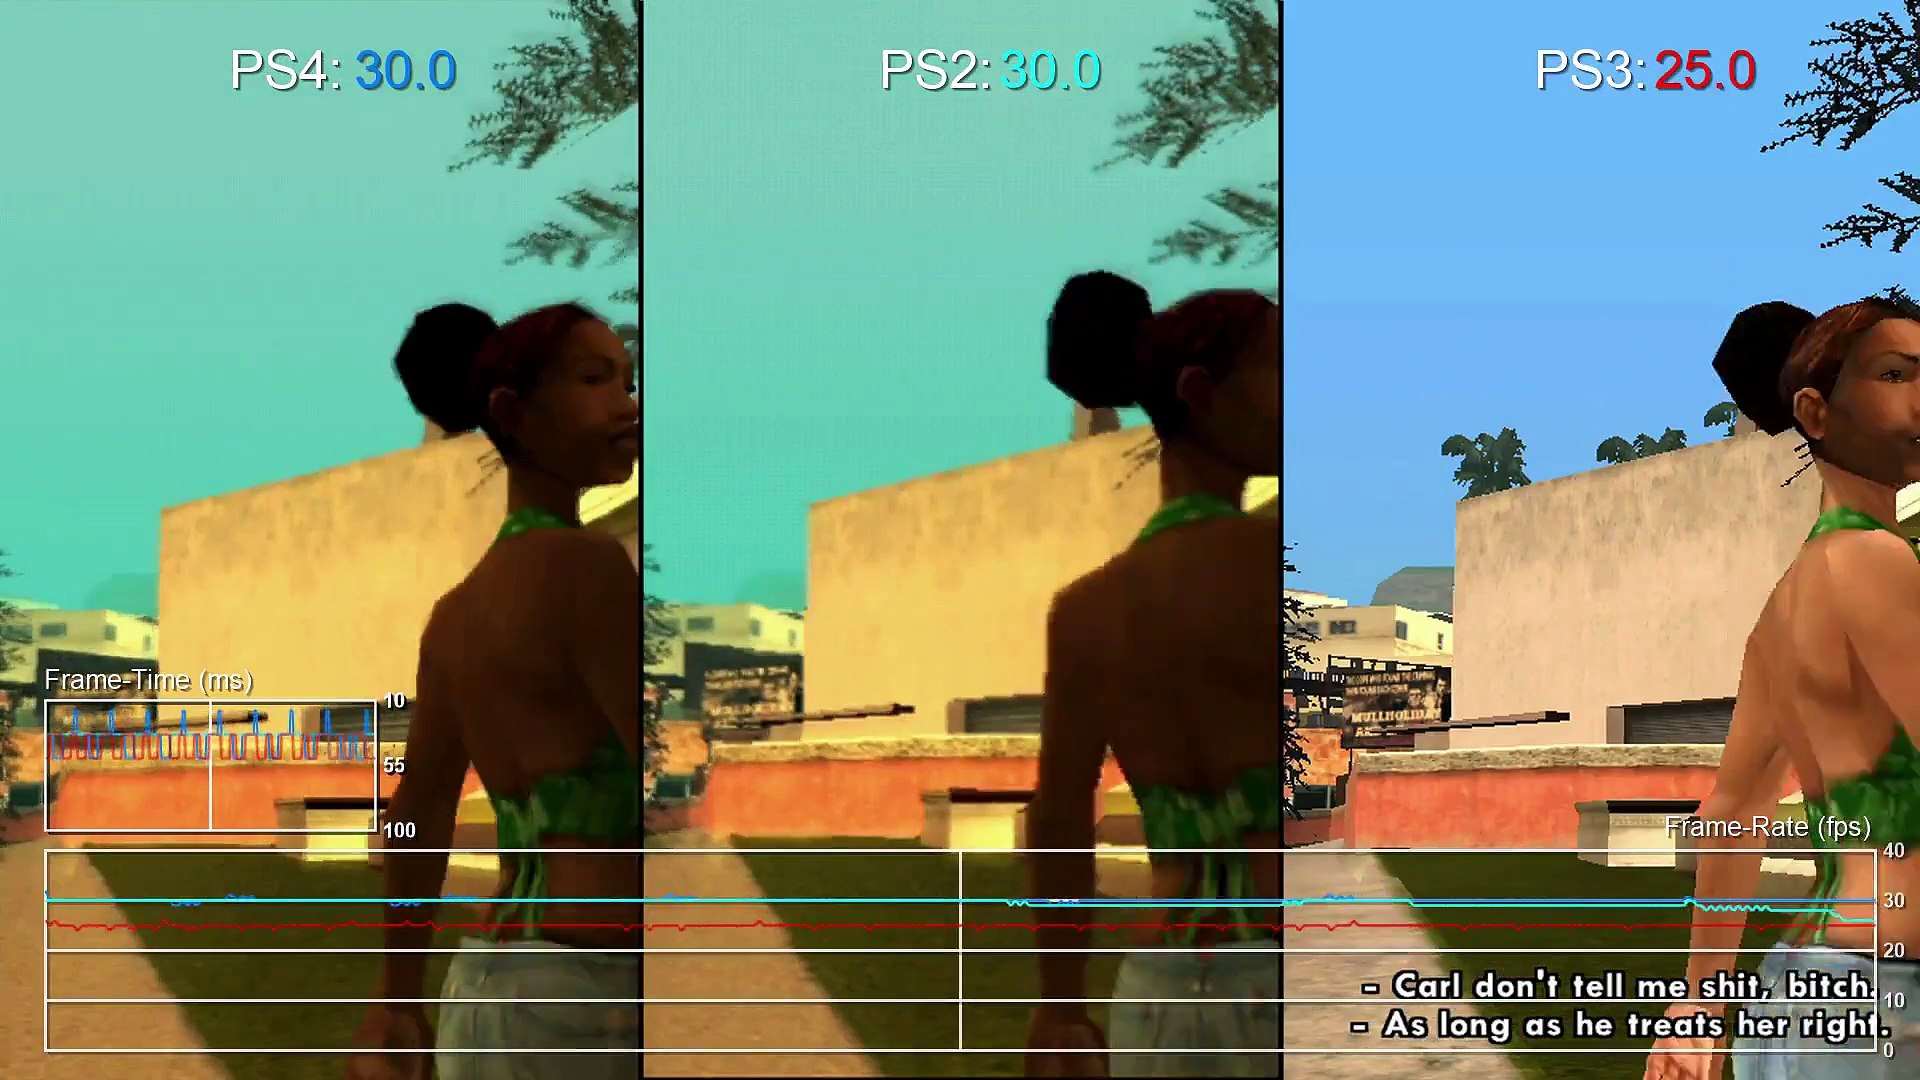 Grand Theft Auto San Andreas PS4 vs PS2 vs PS3 Frame-Rate Test